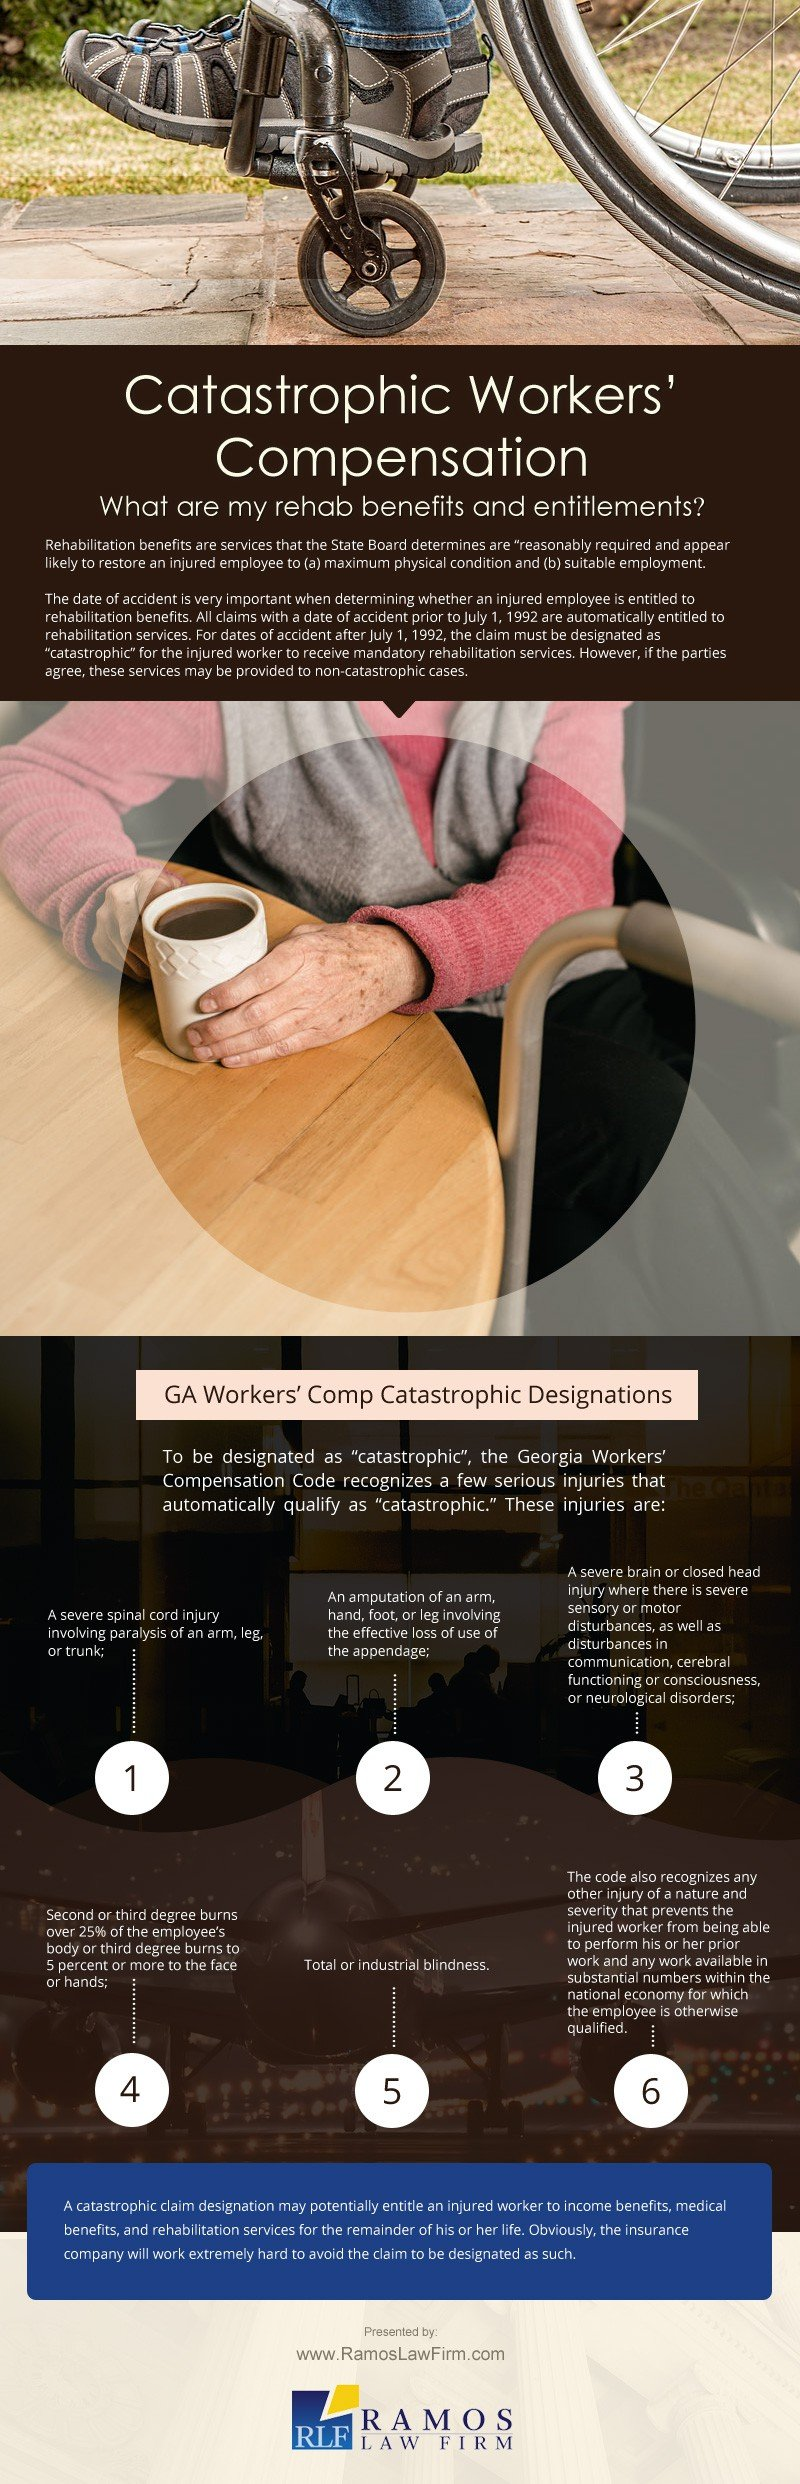 Catastrophic Workers' Compensation [infographic]